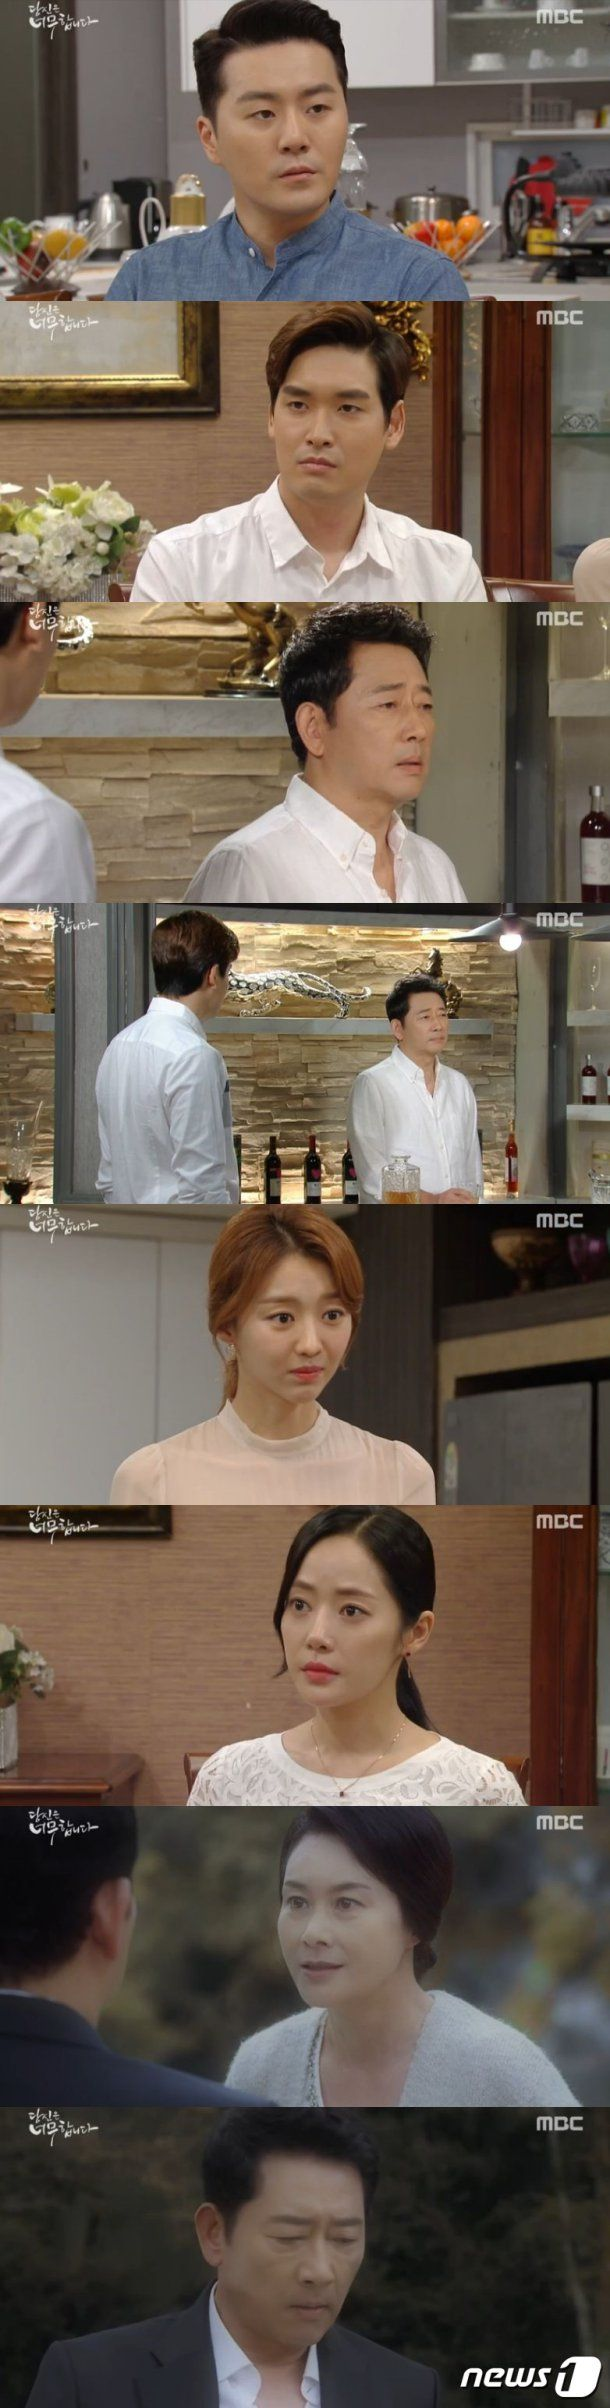 """[Spoiler] """"You're Too Much"""" Jun Kwang-ryul's past is out in the open"""